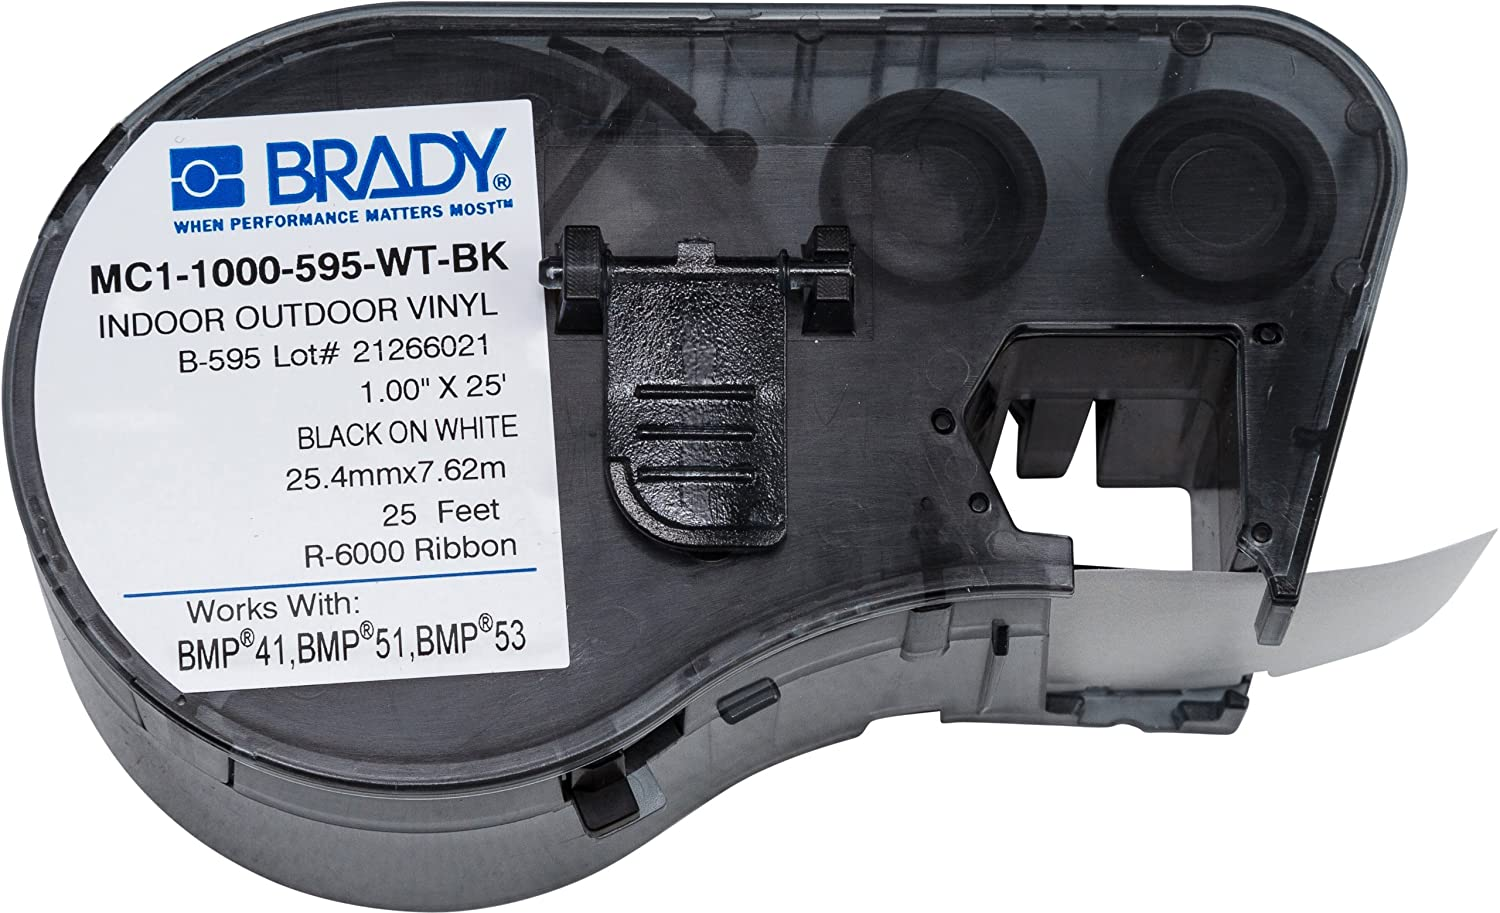 "Brady High Adhesion Vinyl Label Tape (MC1-1000-595-WT-BK) - Black on White Vinyl Film - Compatible with BMP41, BMP51, and BMP53L Label Printers - 25' Length, 1"" Width"